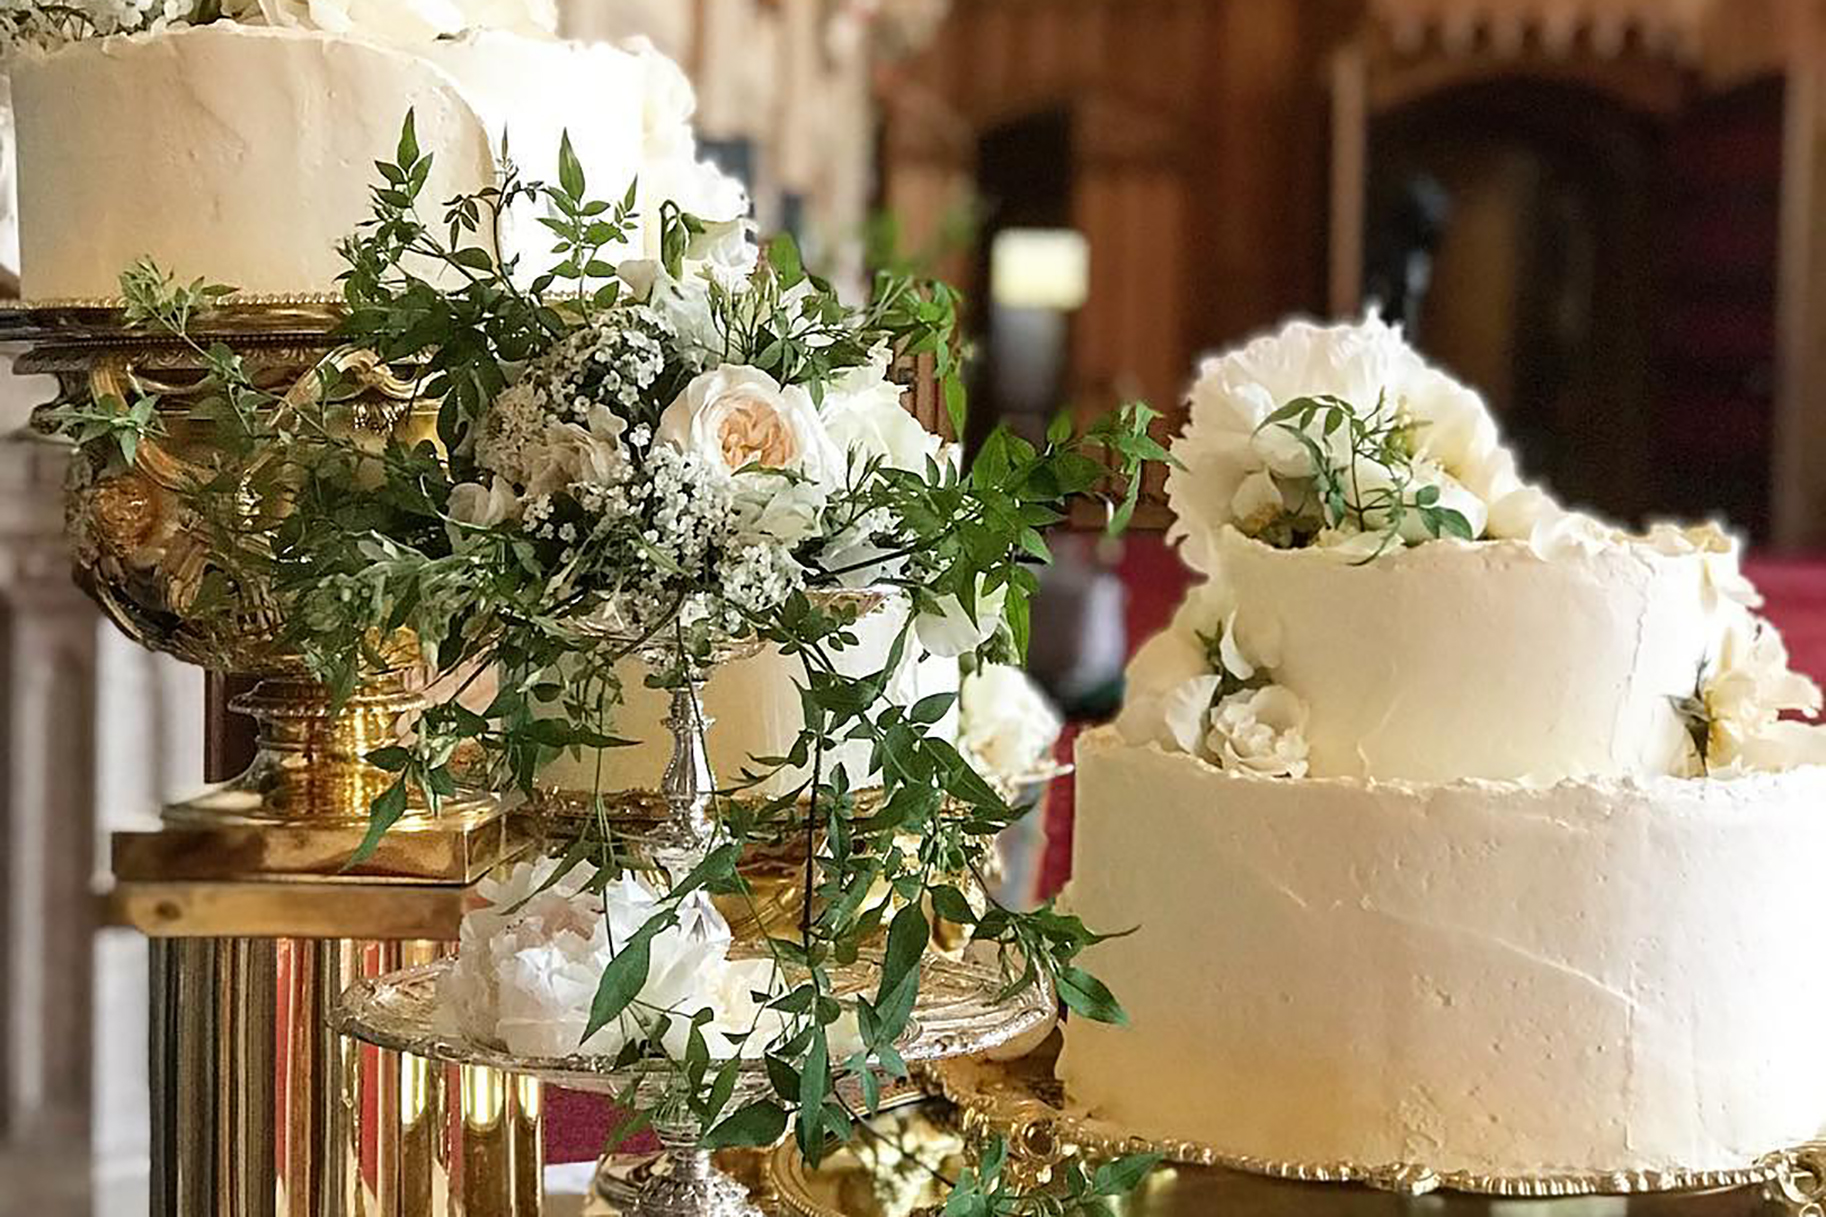 Duff Goldman Married Johnna Colbry Wedding Pictures Cake The Feast